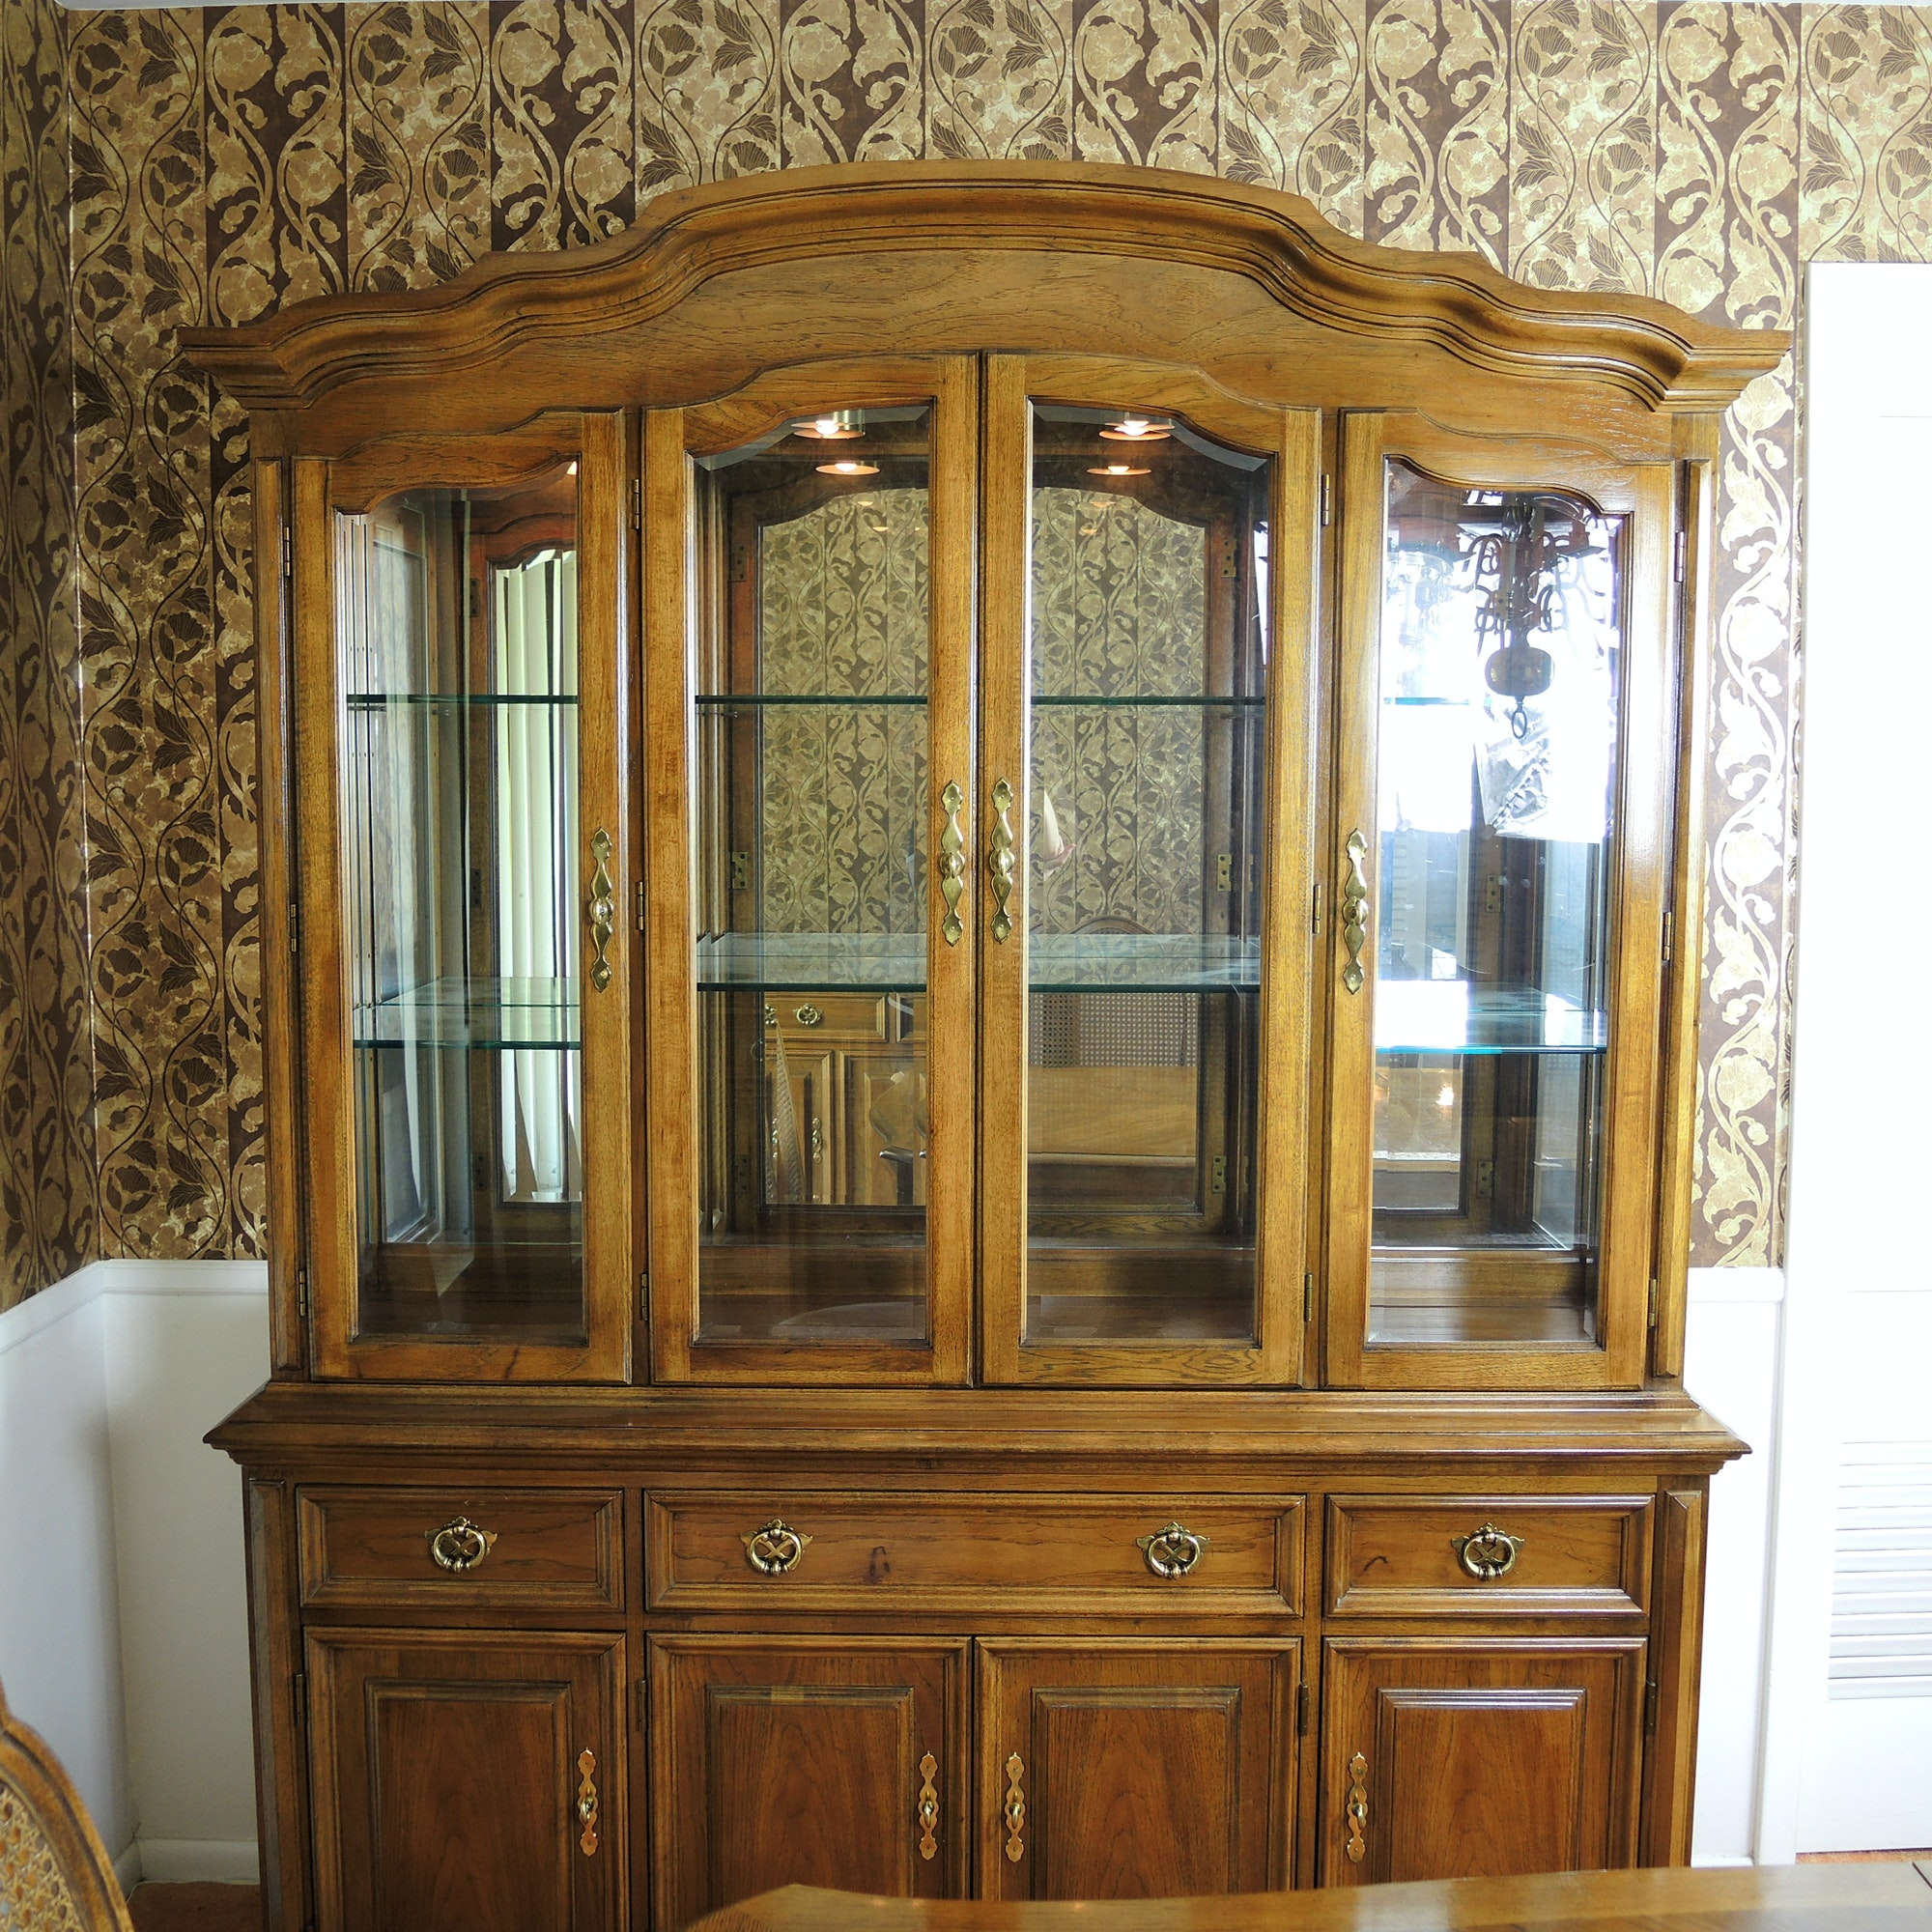 Thomasville French Provincial Style Lighted China Hutch Cabinet